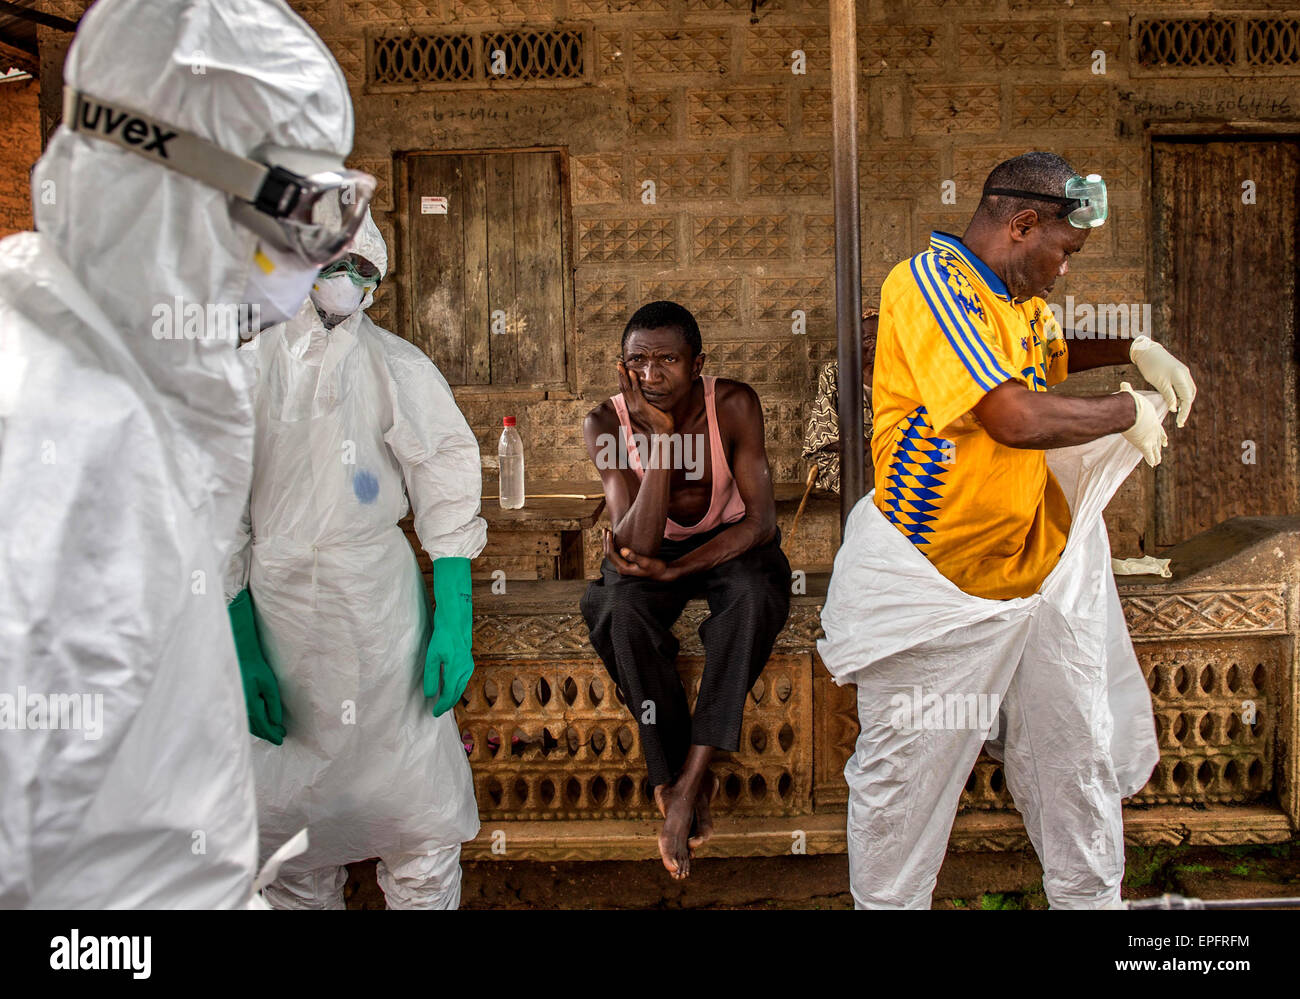 Members of a burial team prepare for a burial in Komende Luyama village. Eastern Sierra Leone was a hot spot for - Stock Image